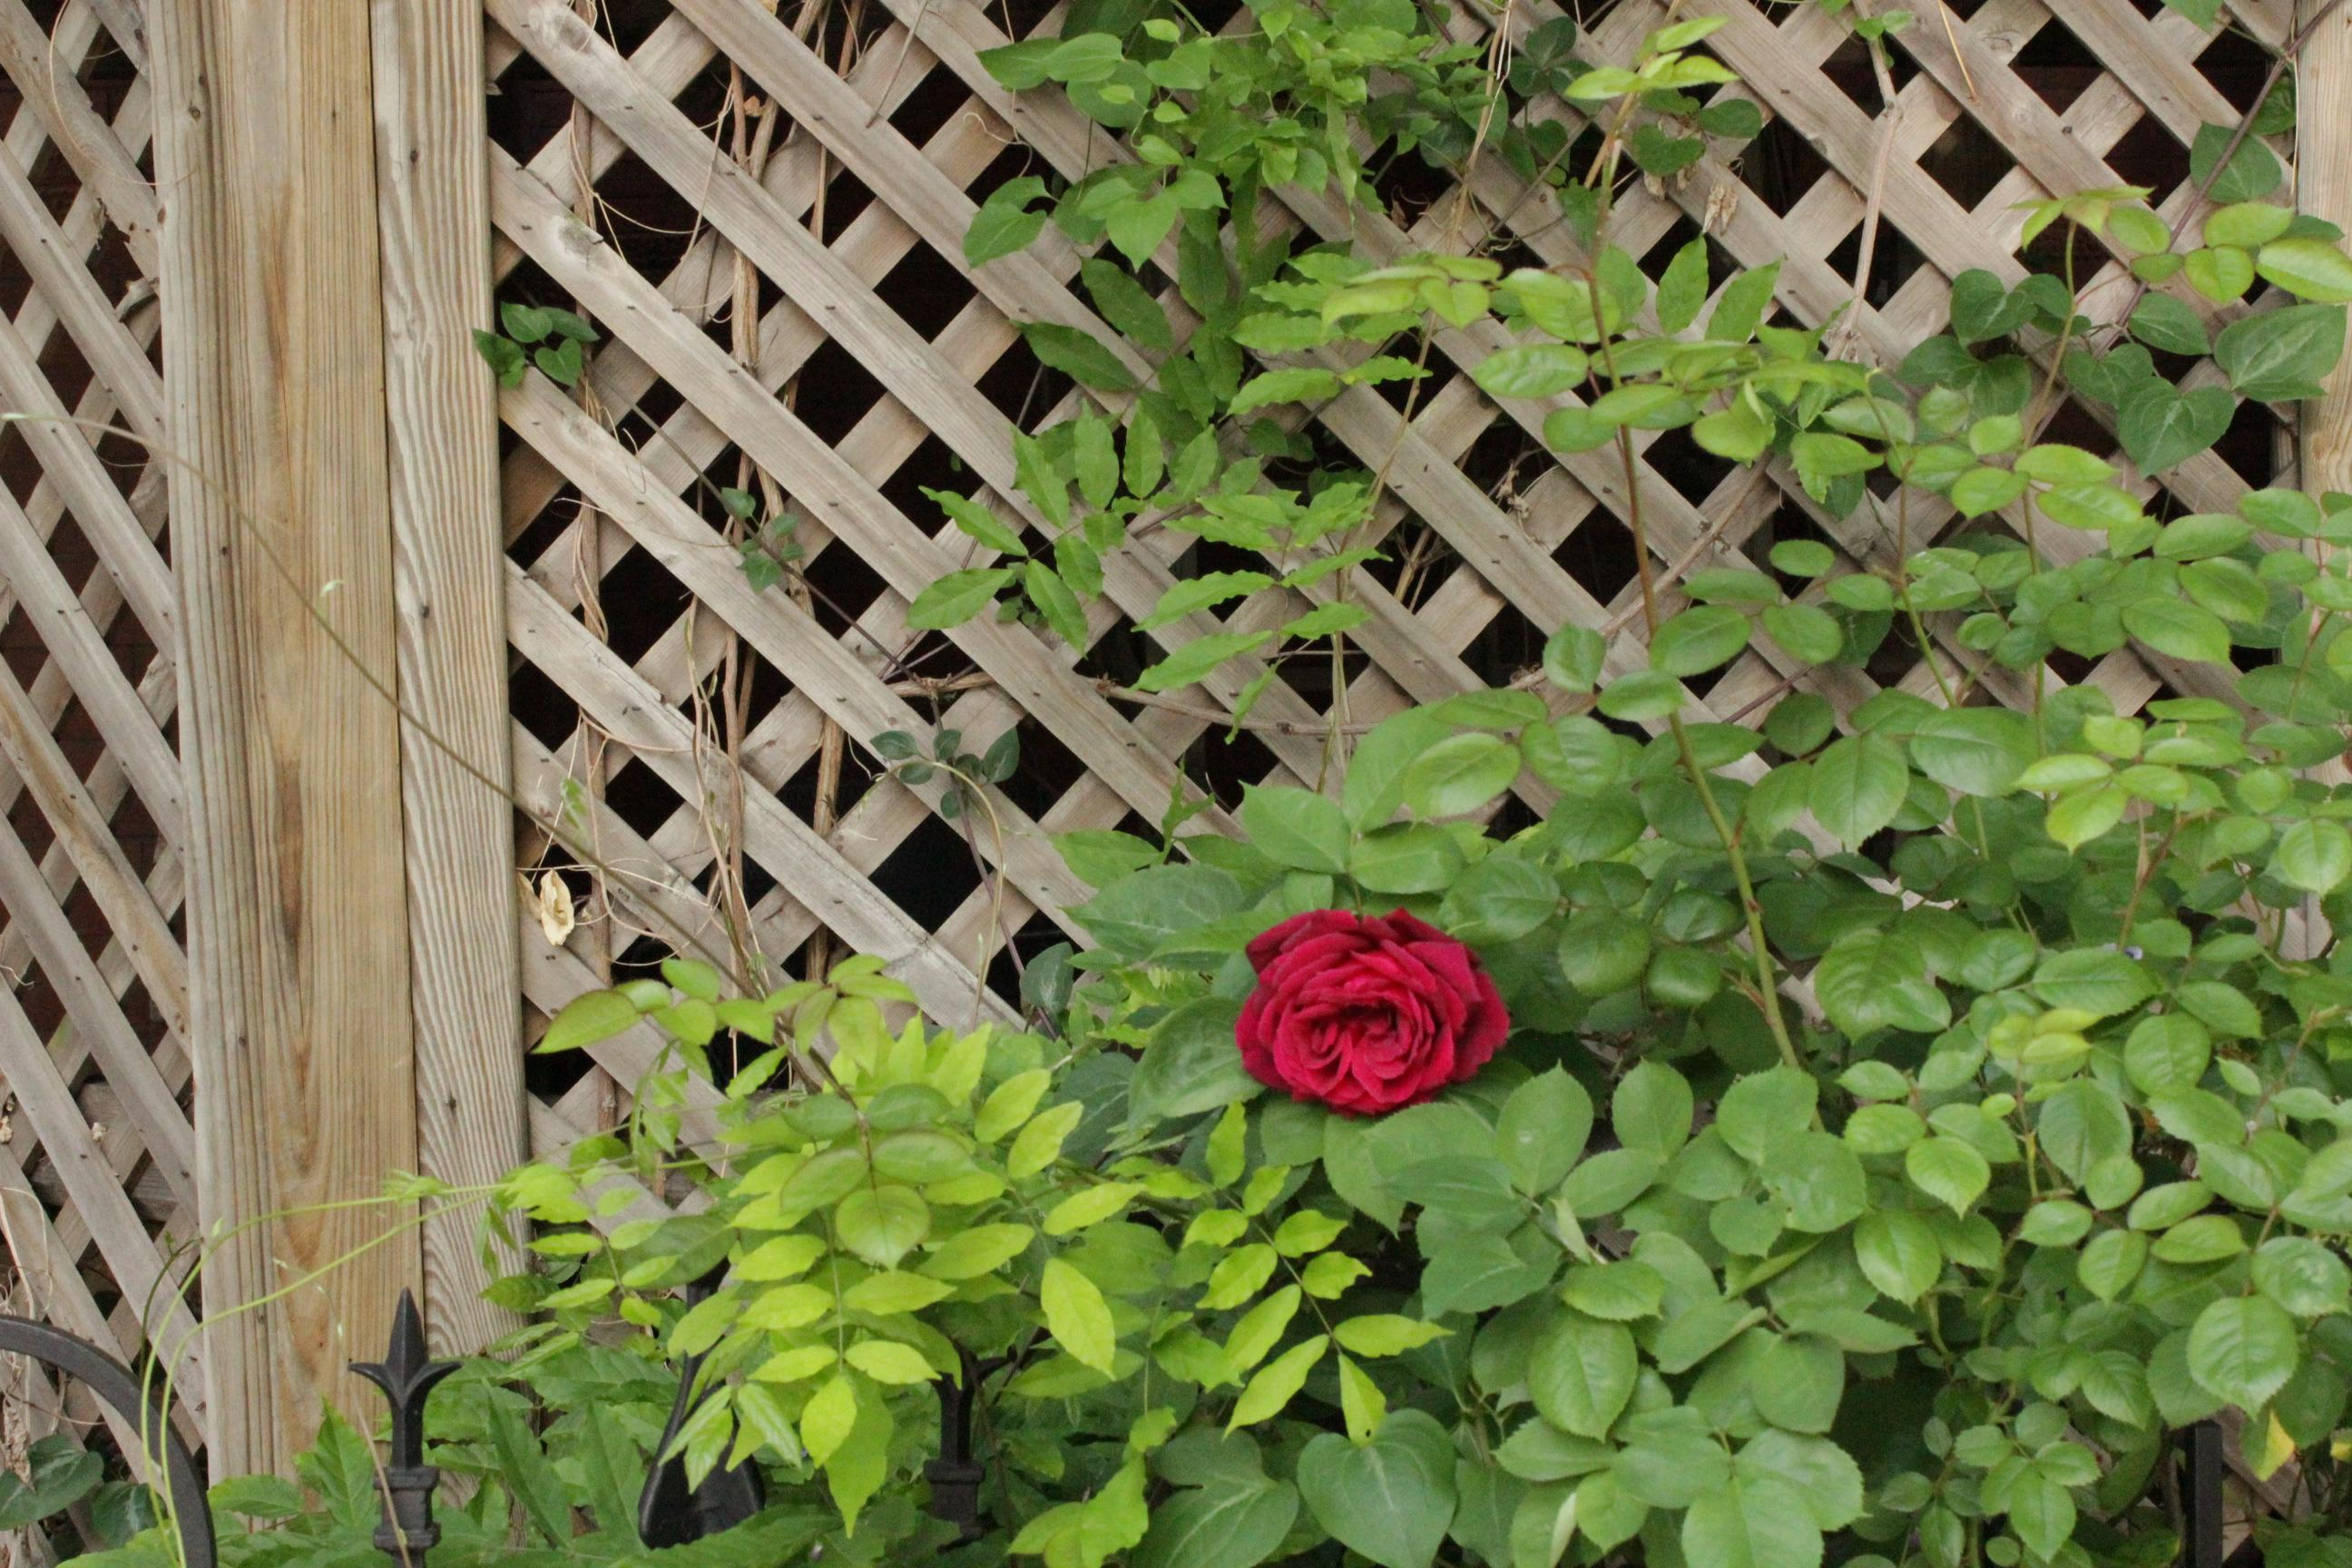 Trellis ideas for privacy - Trellis